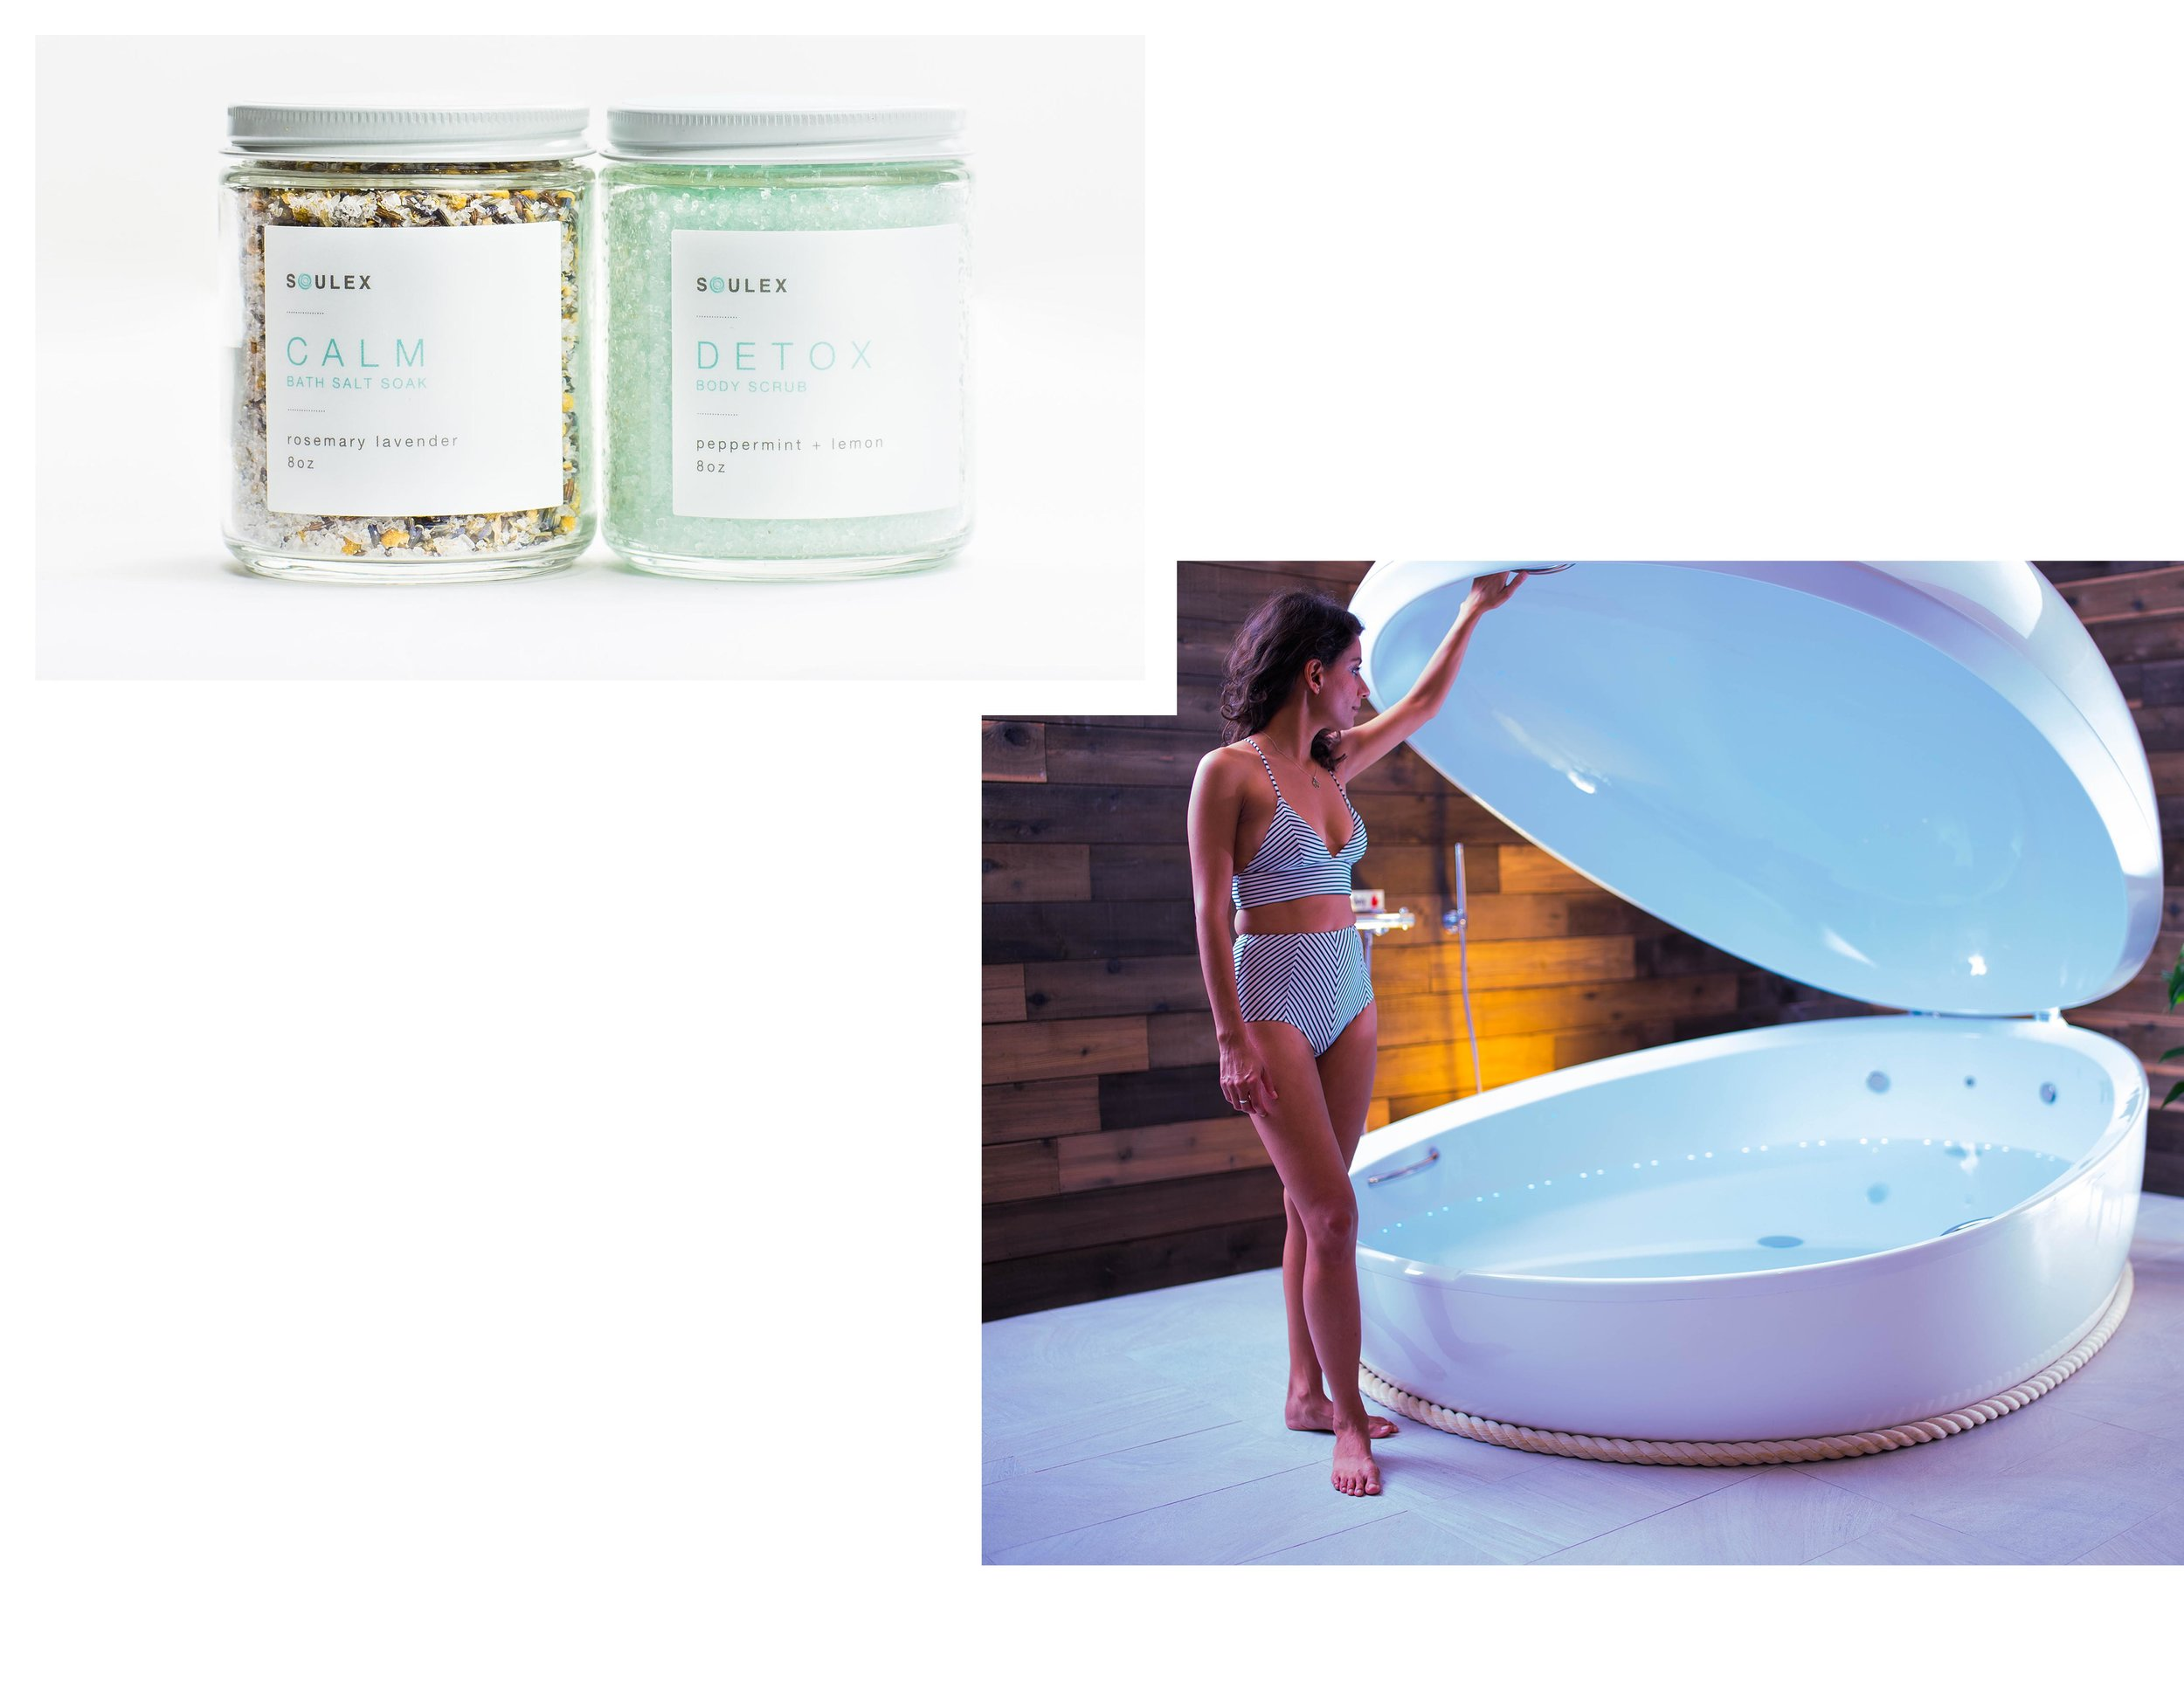 The best Mother's Day gift just got BETTER! - Give your Mom the gift of FLOATING! Treat Mom to a SOULEX Mother's Day Float Package - one blissful hour of floating + a gift set for her to take home and enjoy. A jar of CALM Bath Salt + DETOX Body Scrub!